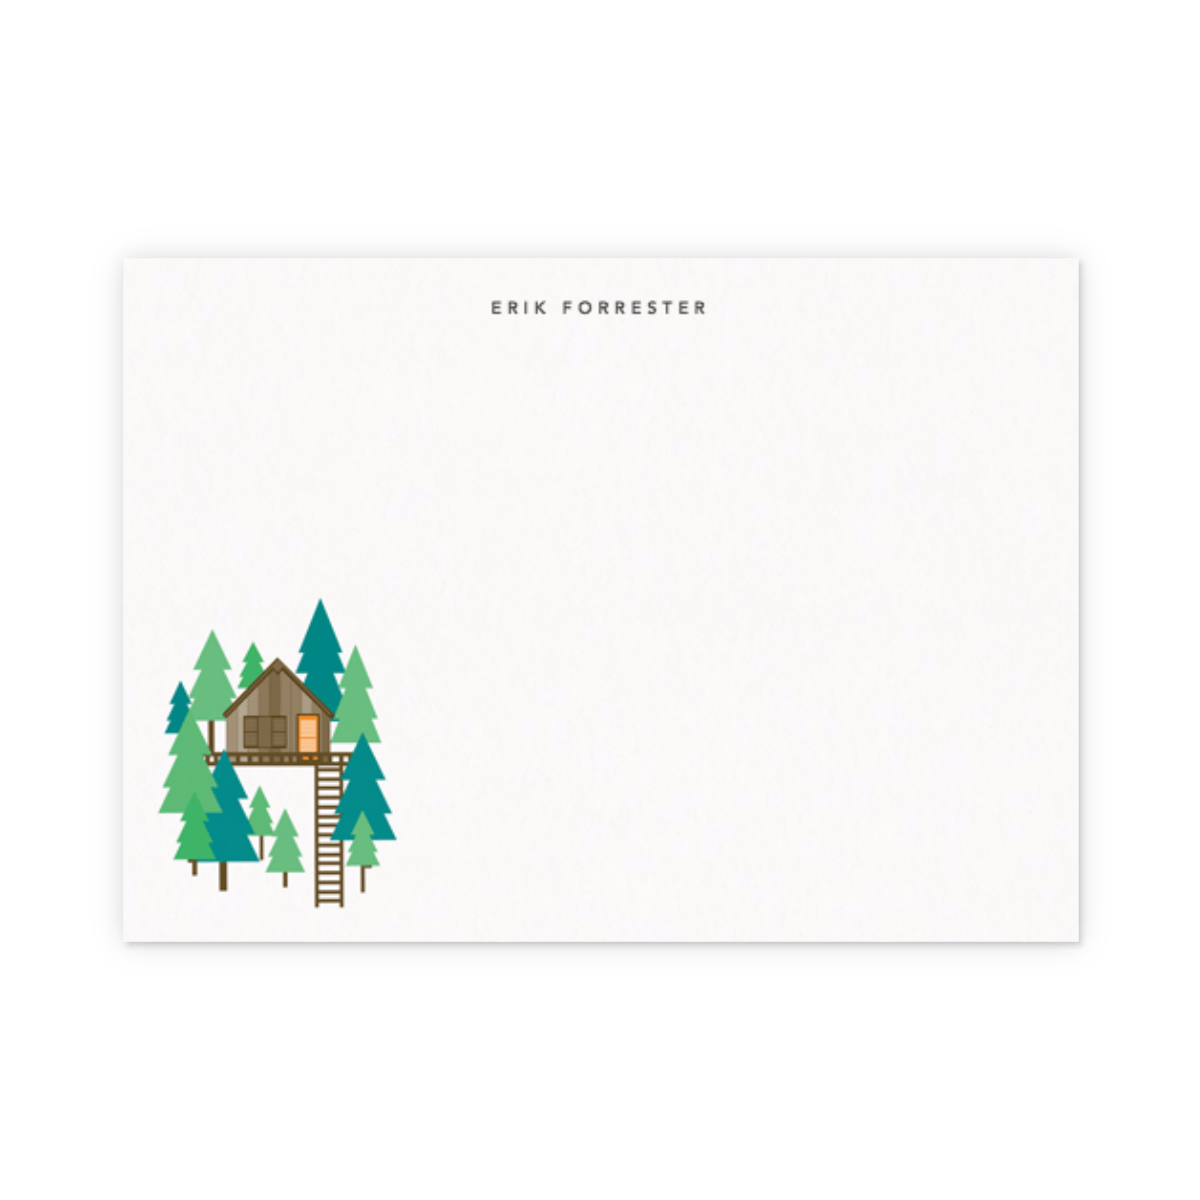 Https%3a%2f%2fwww.papier.com%2fproduct image%2f2718%2f10%2ftreehouse 747 avant 1453910425.png?ixlib=rb 1.1